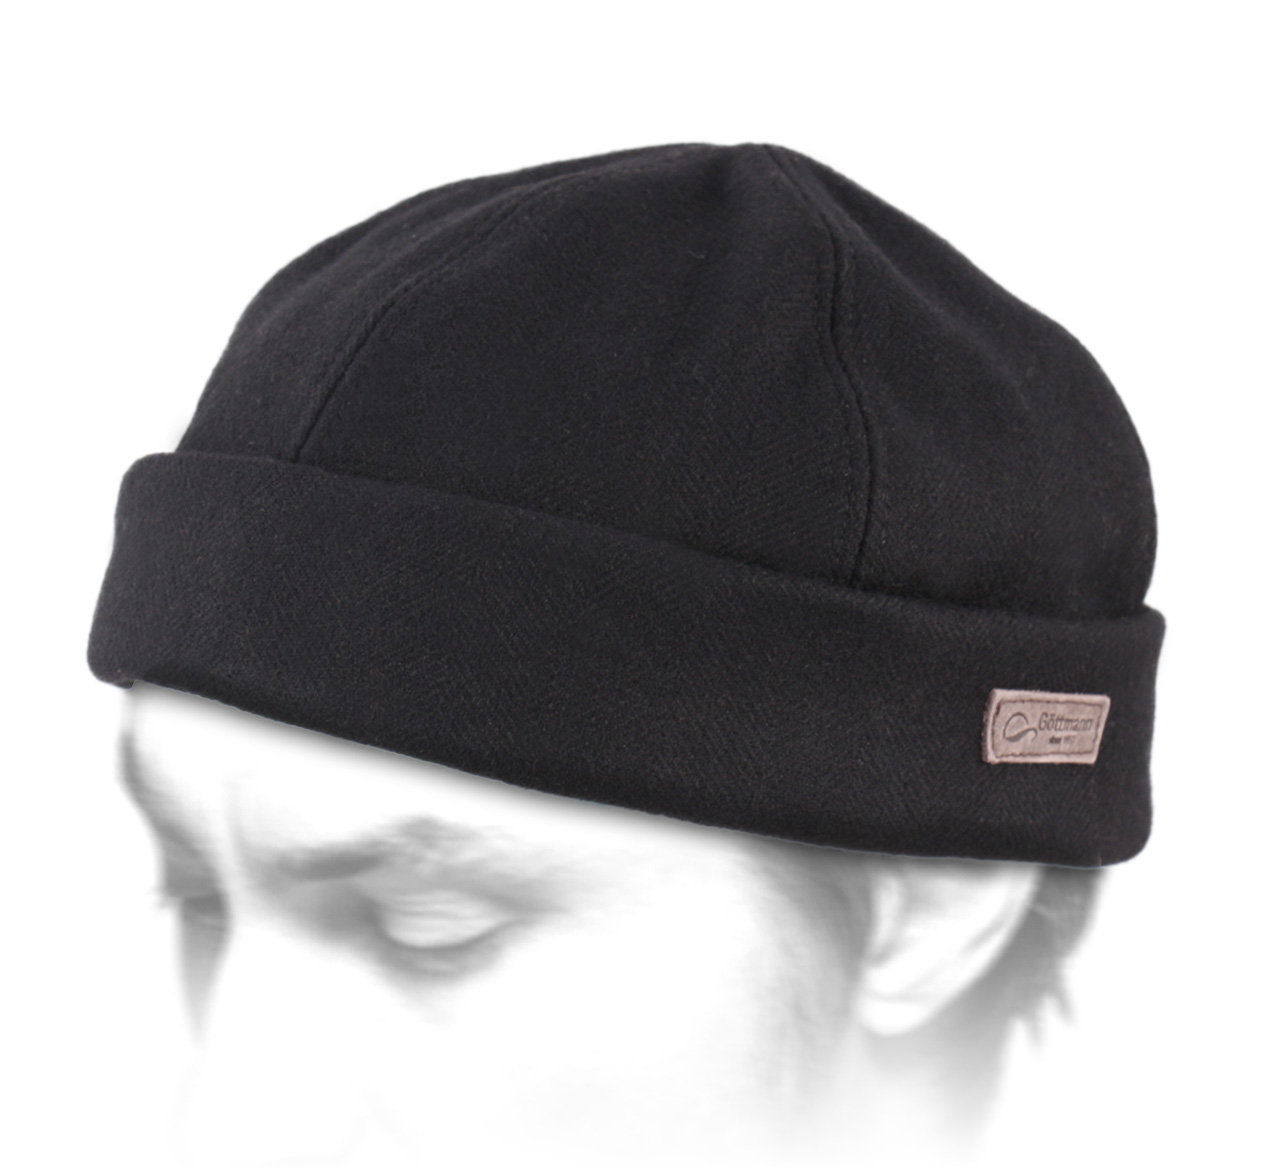 Bonnet Docker / Court Bonnet Homme Docker